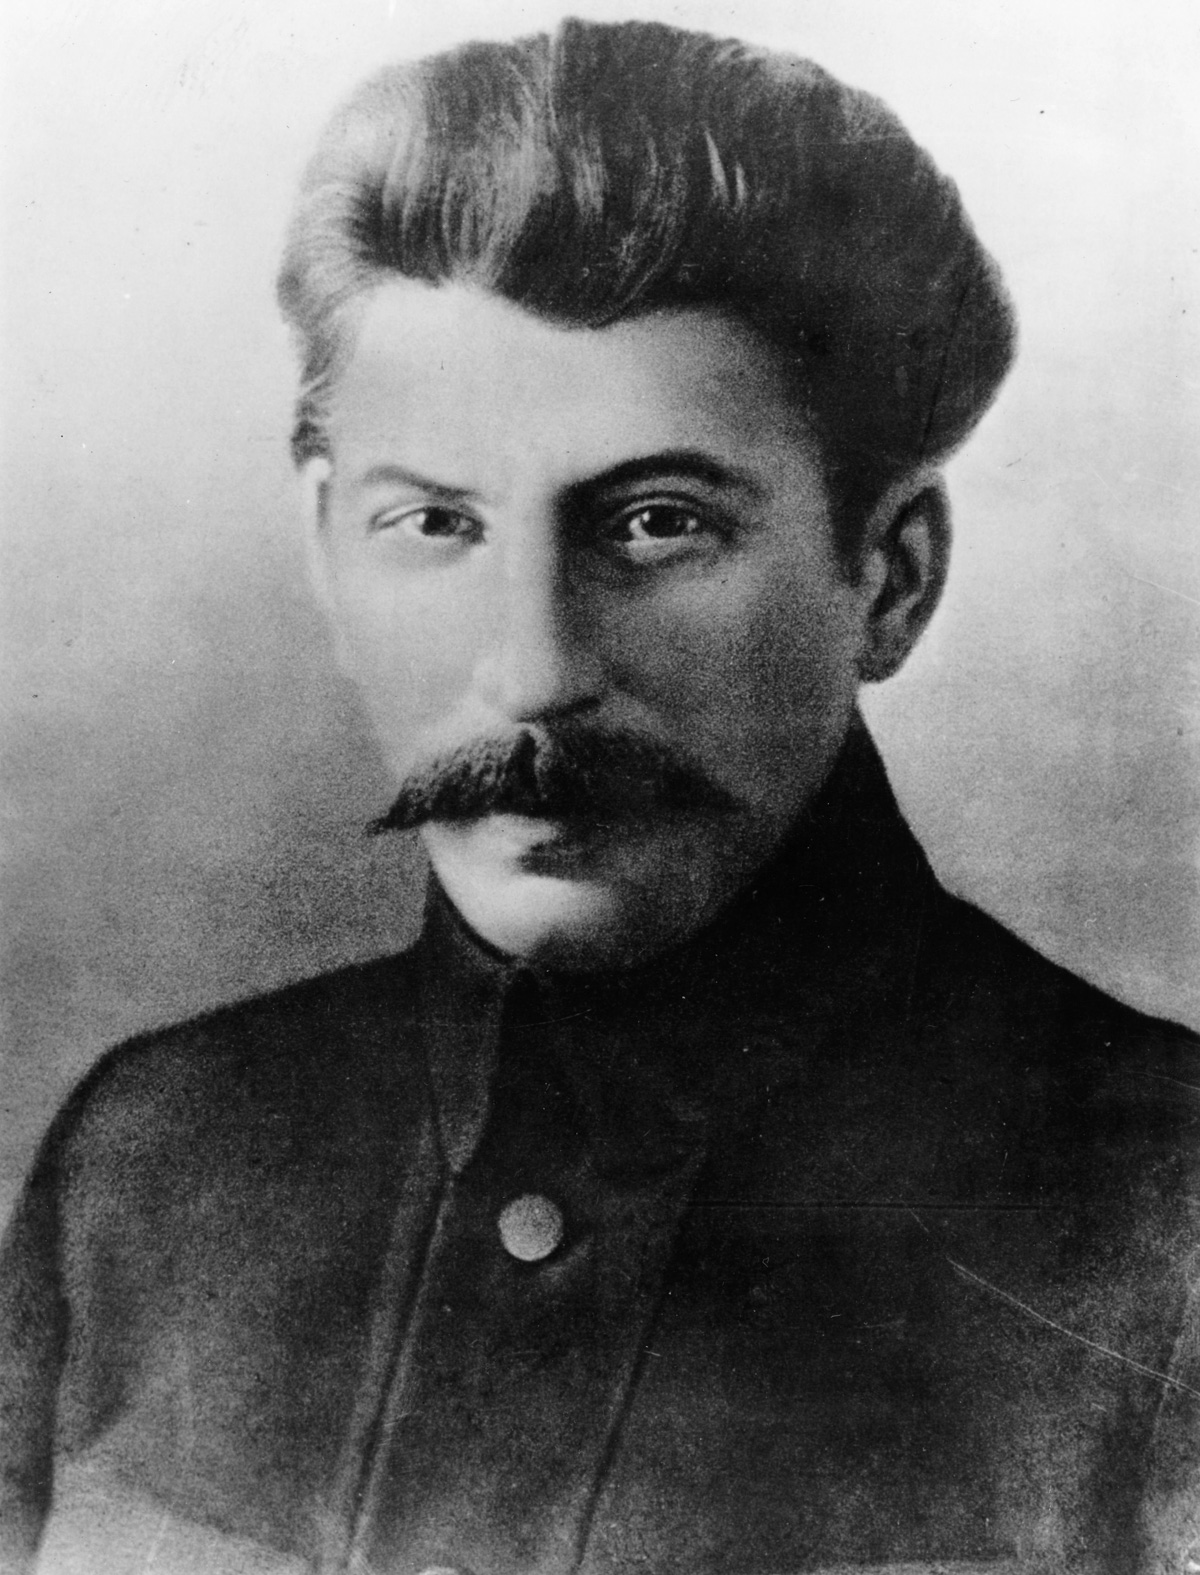 joseph stalin As dictator of the ussr from 1924 to 1953, joseph stalin was responsible for the  death of millions yet, he reigned victorious against nazi.